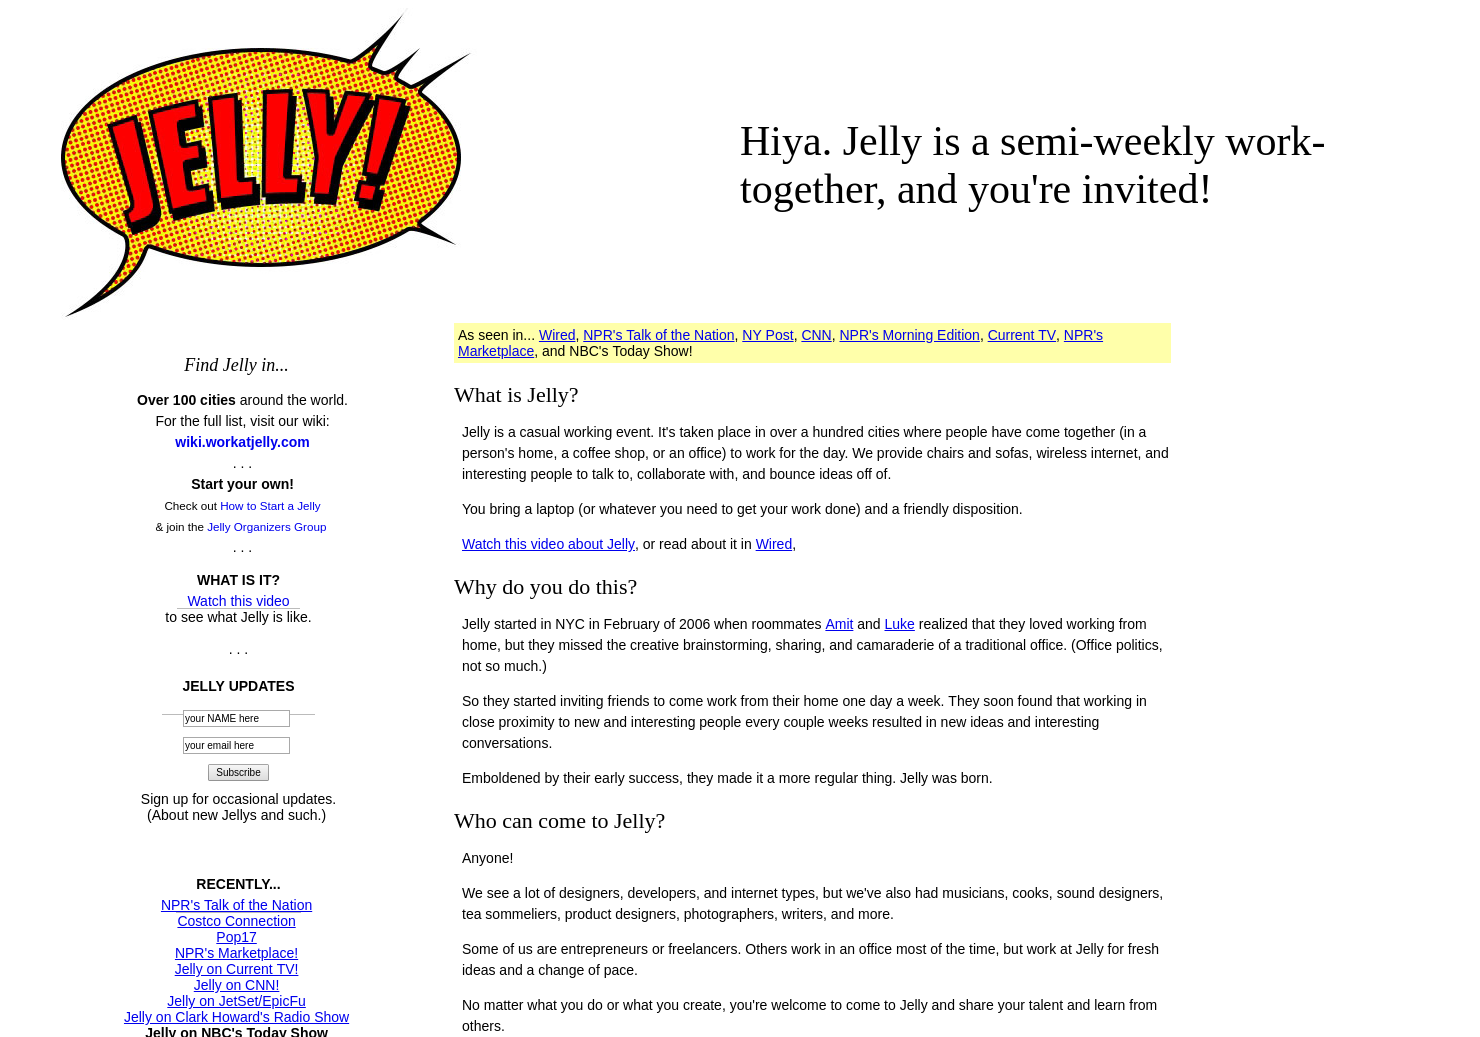 http://www.workatjelly.com/